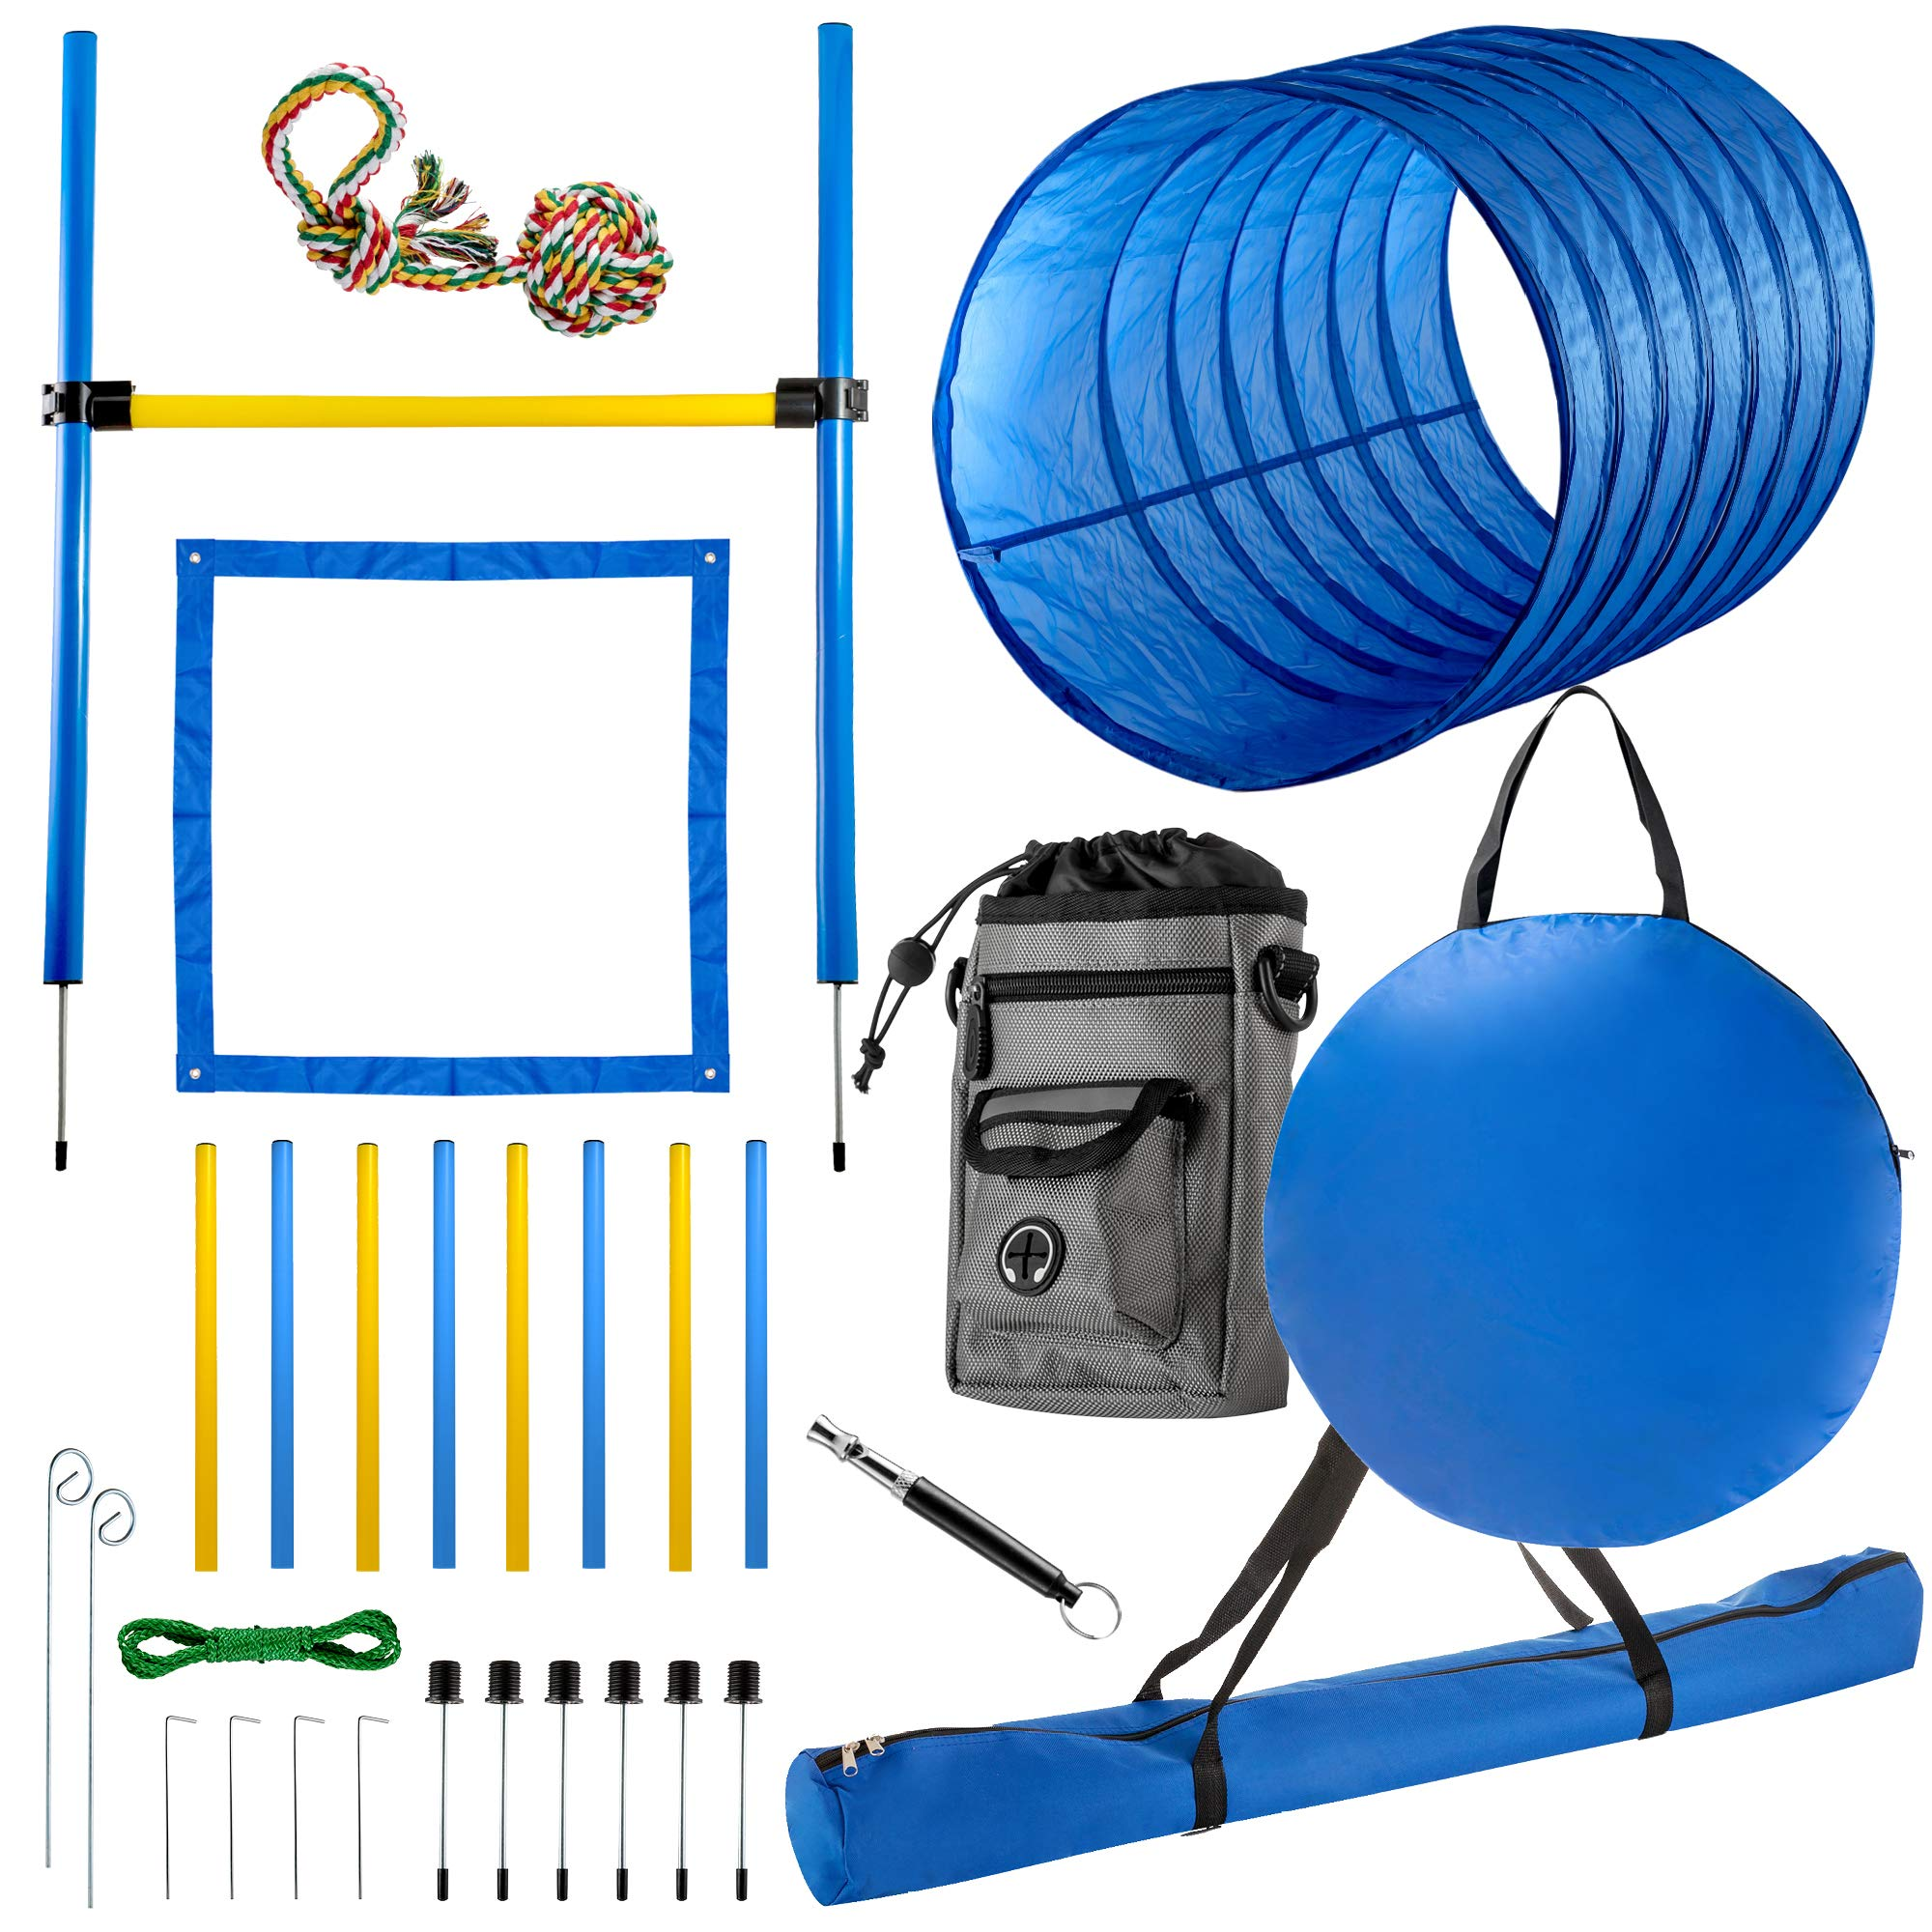 CHEERING PET Agility Equipment for Dogs, 29 Piece Obstacle Course with 58.5'' Long Tunnel, Adjustable Hurdles, Poles, Whistle, Rope Toy, Treat Bag - Pet Outdoor Play Equipment with Carrying Case by CHEERING PET